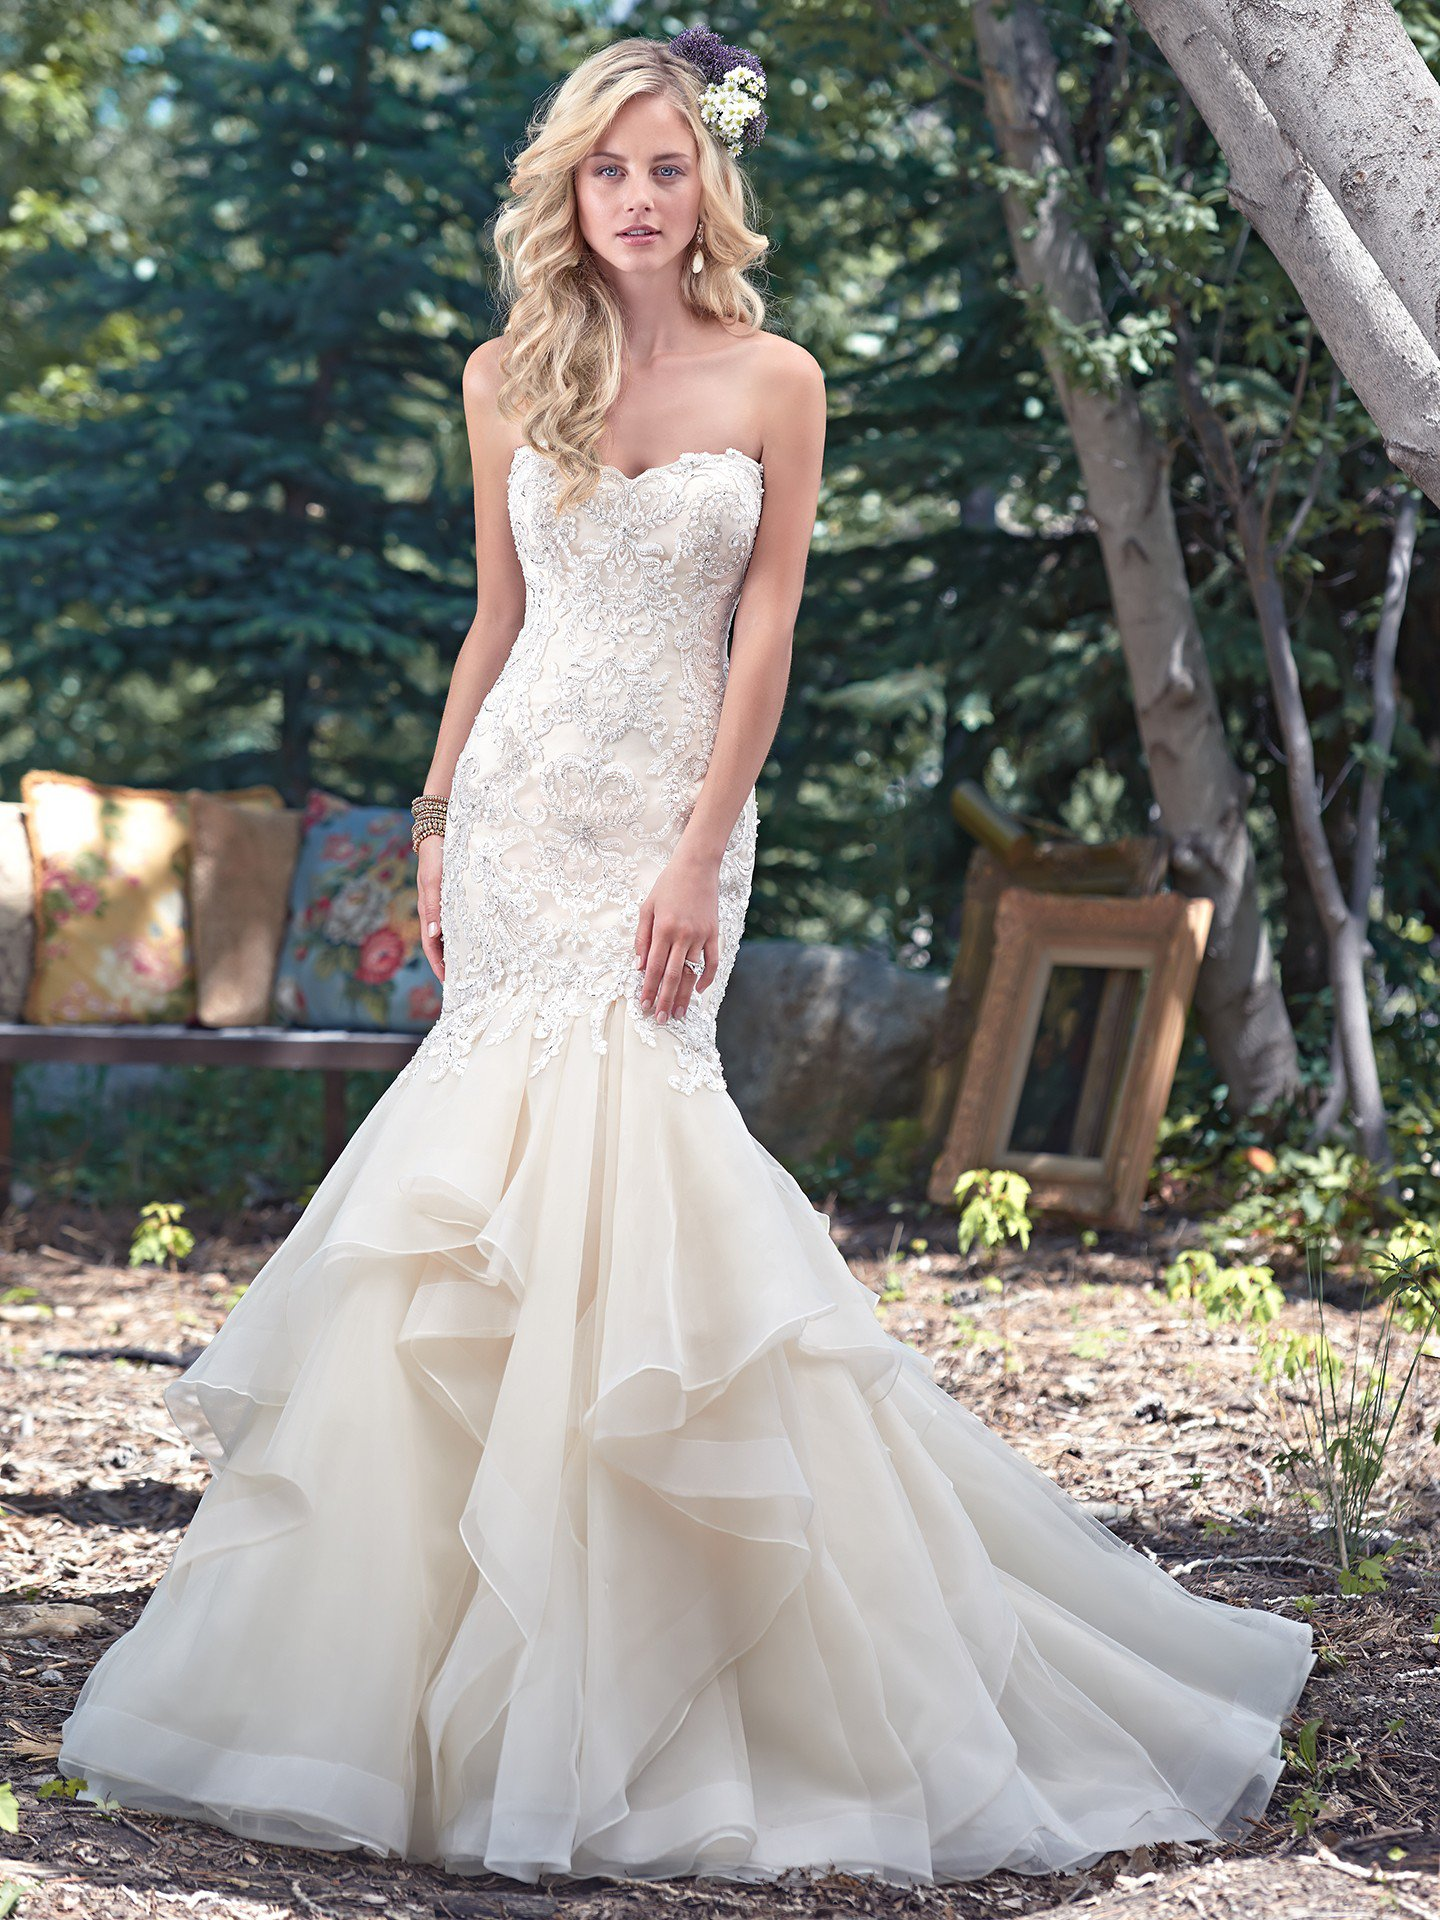 Maggie Sottero ruffled wedding dress